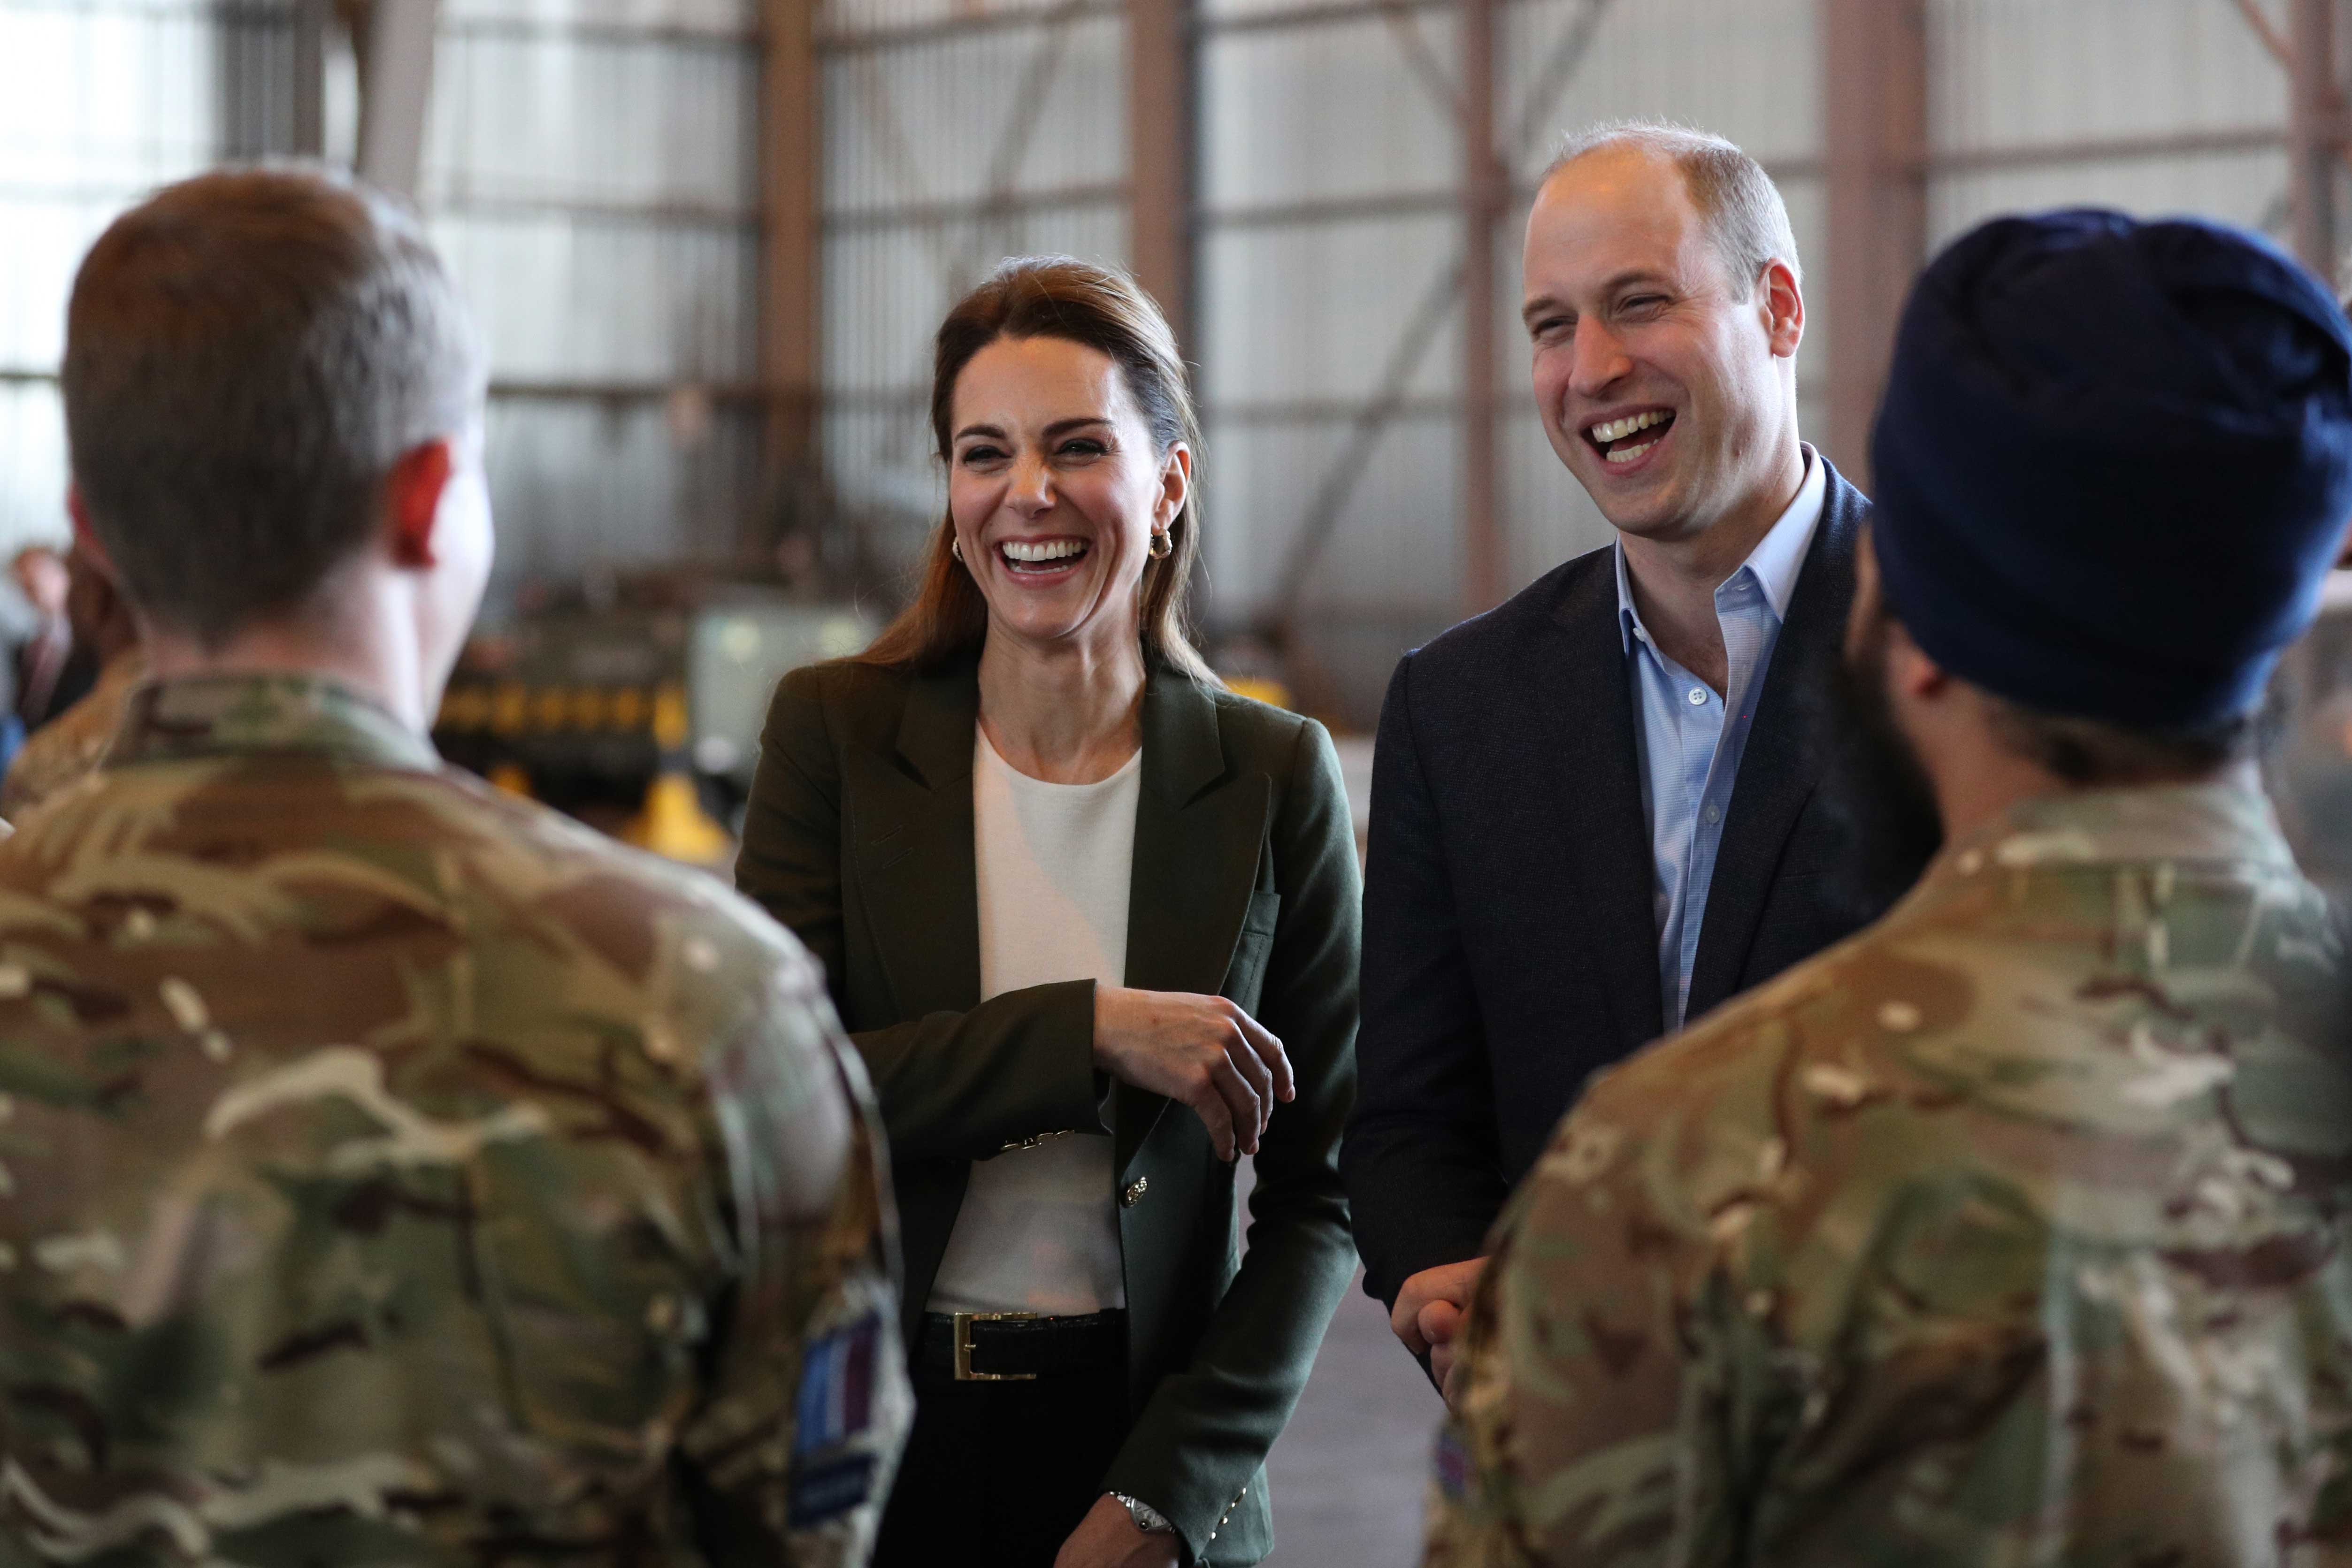 The Duke and Duchess of Cambridge in Cyprus Delivering a Message of Support to Military Stationed there